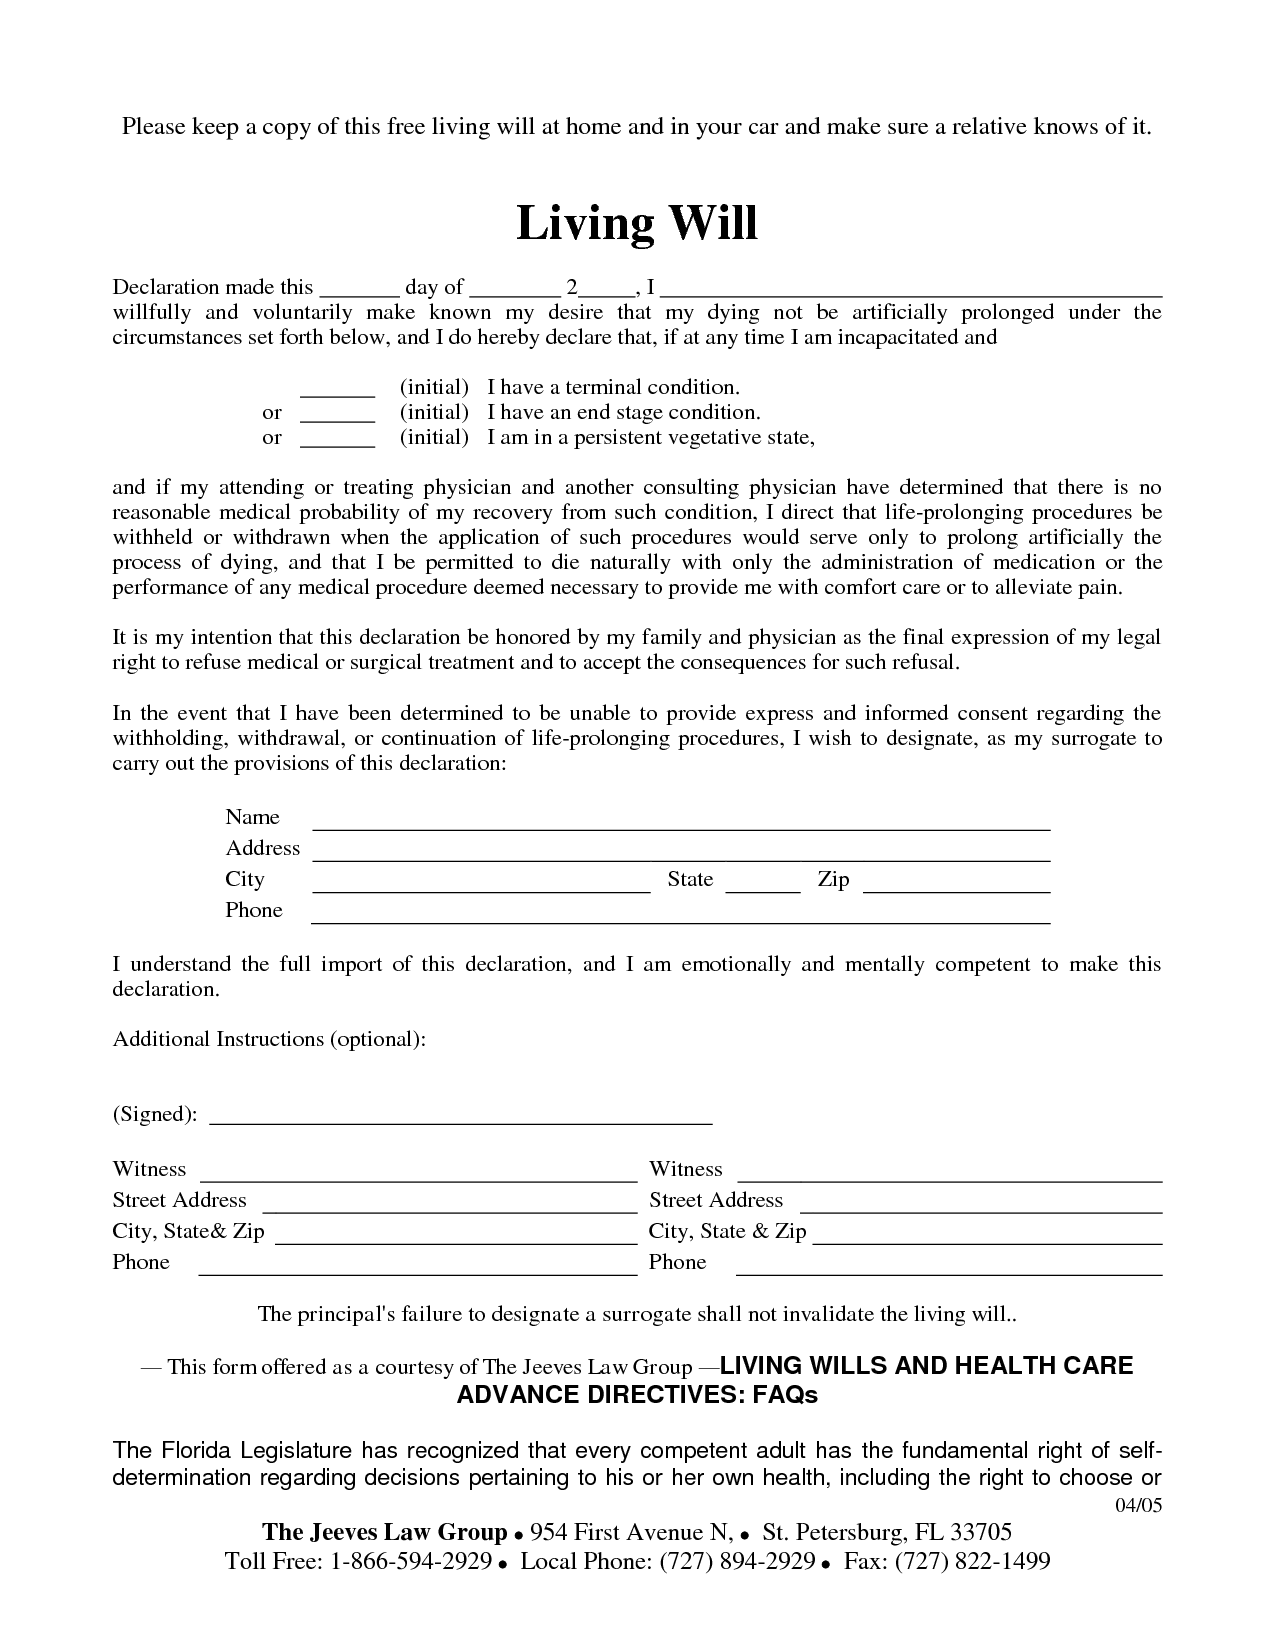 Living Will Sample Free Printable Documents Estate Planning Checklist Funeral Planning Checklist Funeral Planning